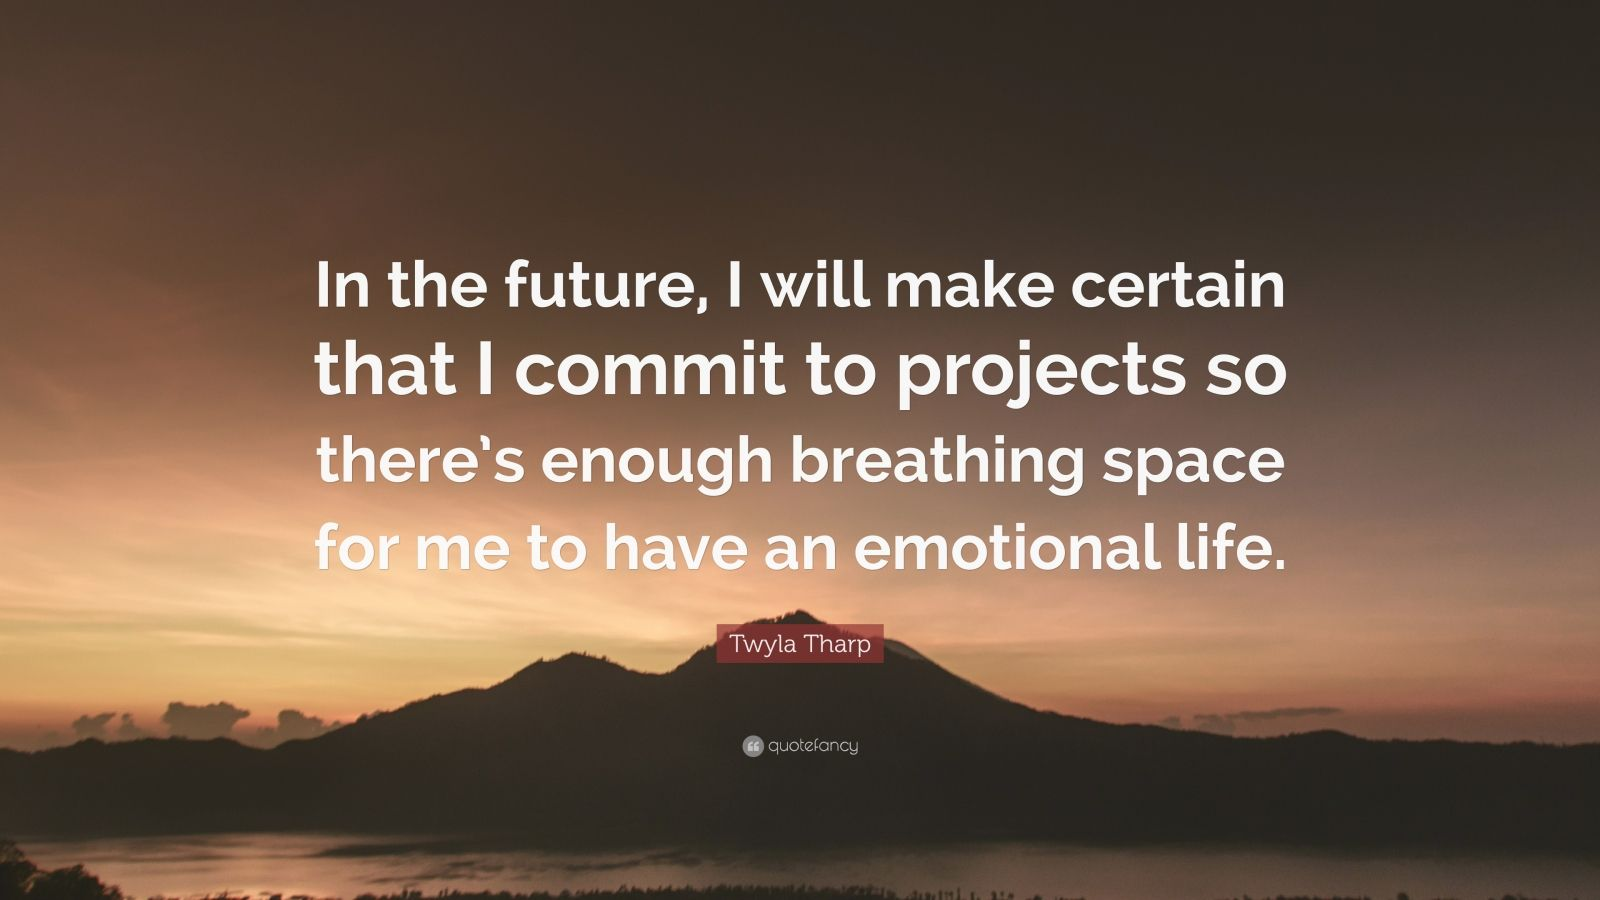 """Twyla Tharp Quote: """"In the future, I will make certain that I commit to projects so there's enough breathing space for me to have an emotional life."""""""